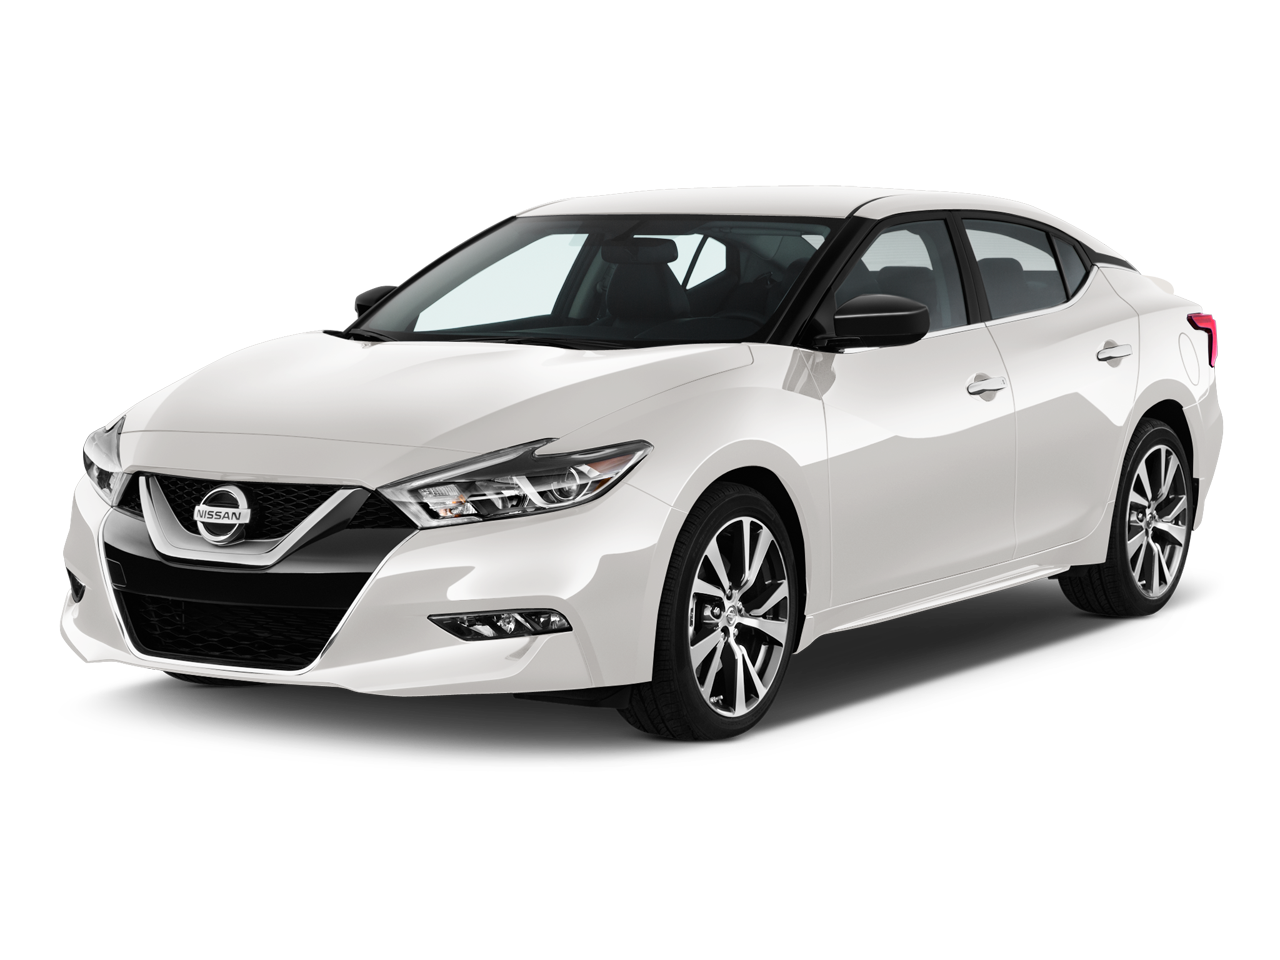 New Nissan Maxima for Sale Western Ave Nissan